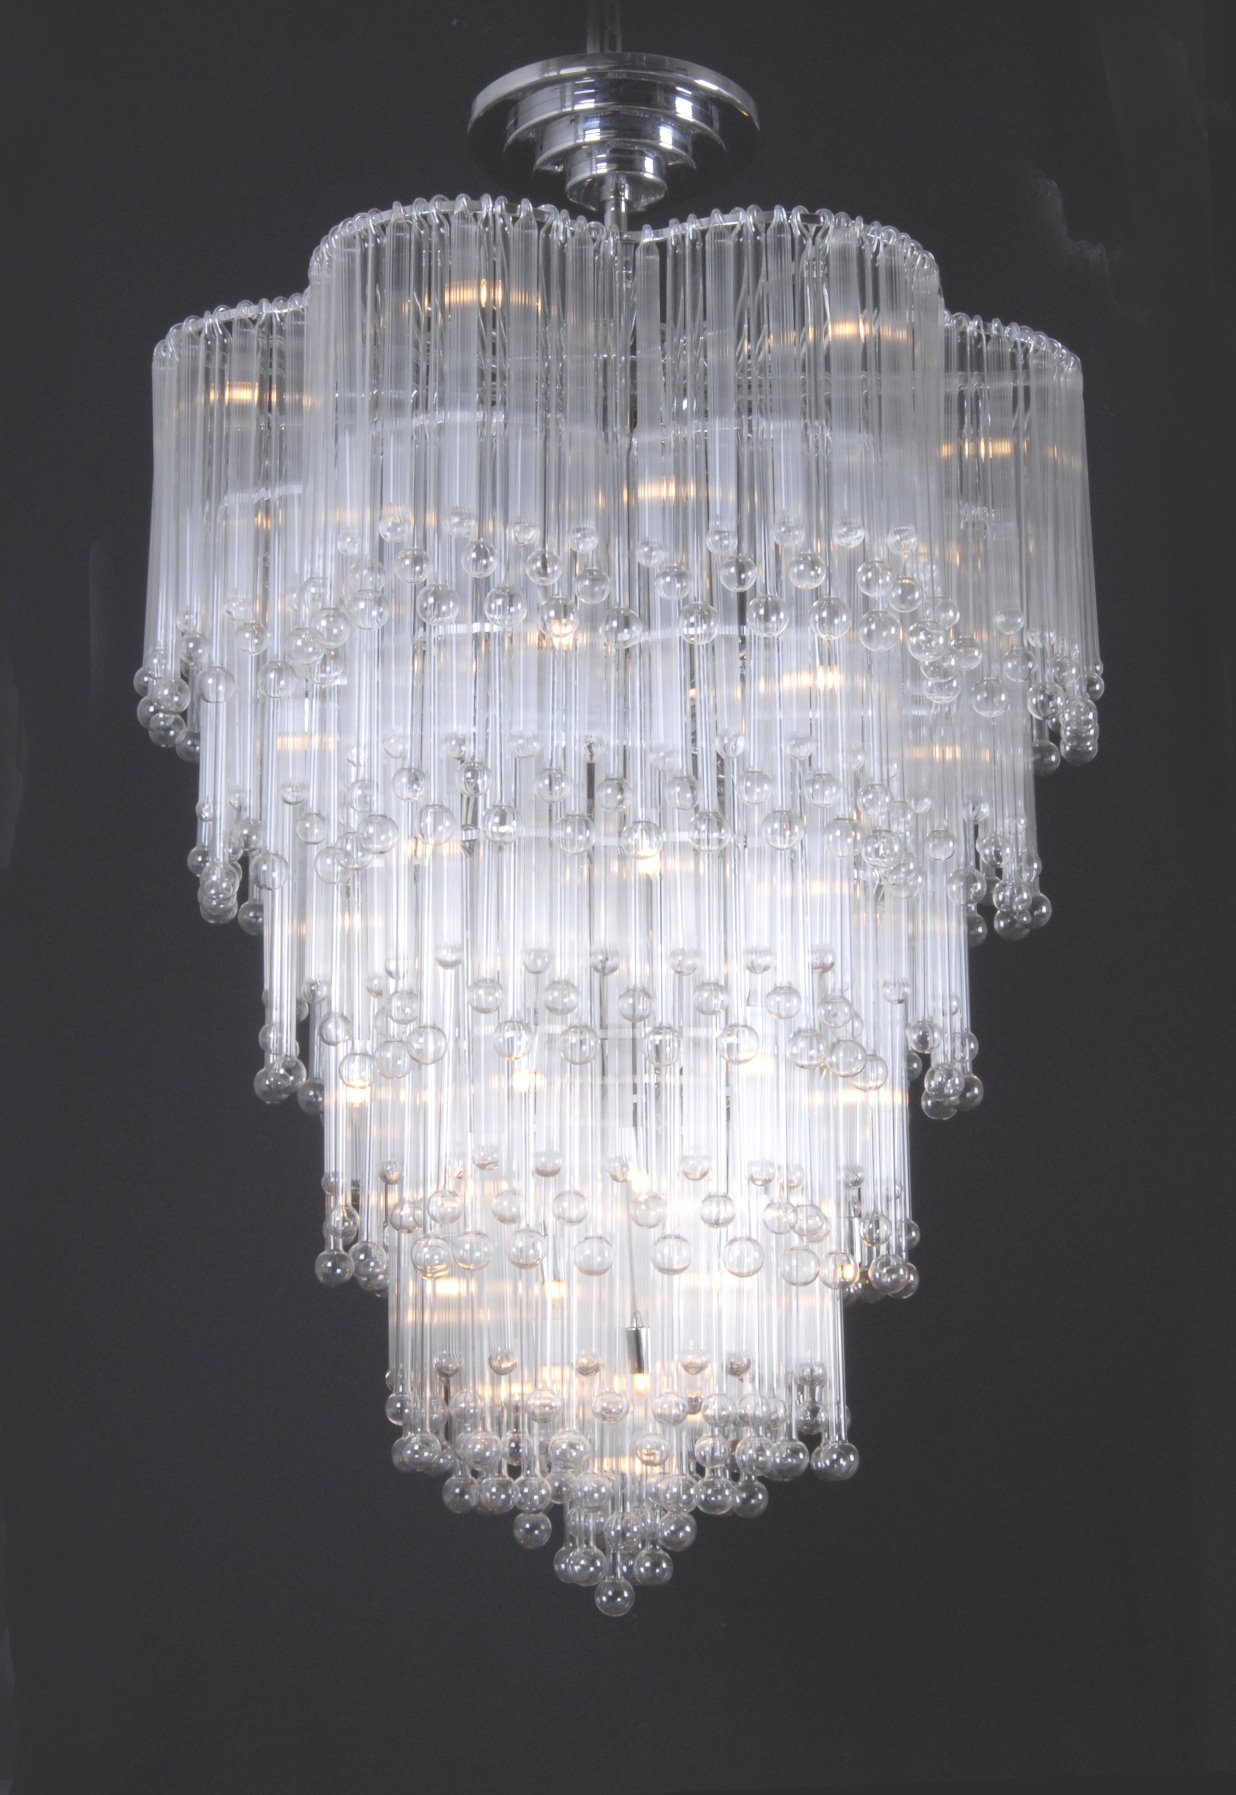 Modern Glass Chandeliers With Glass Chandeliers (#8 of 12)